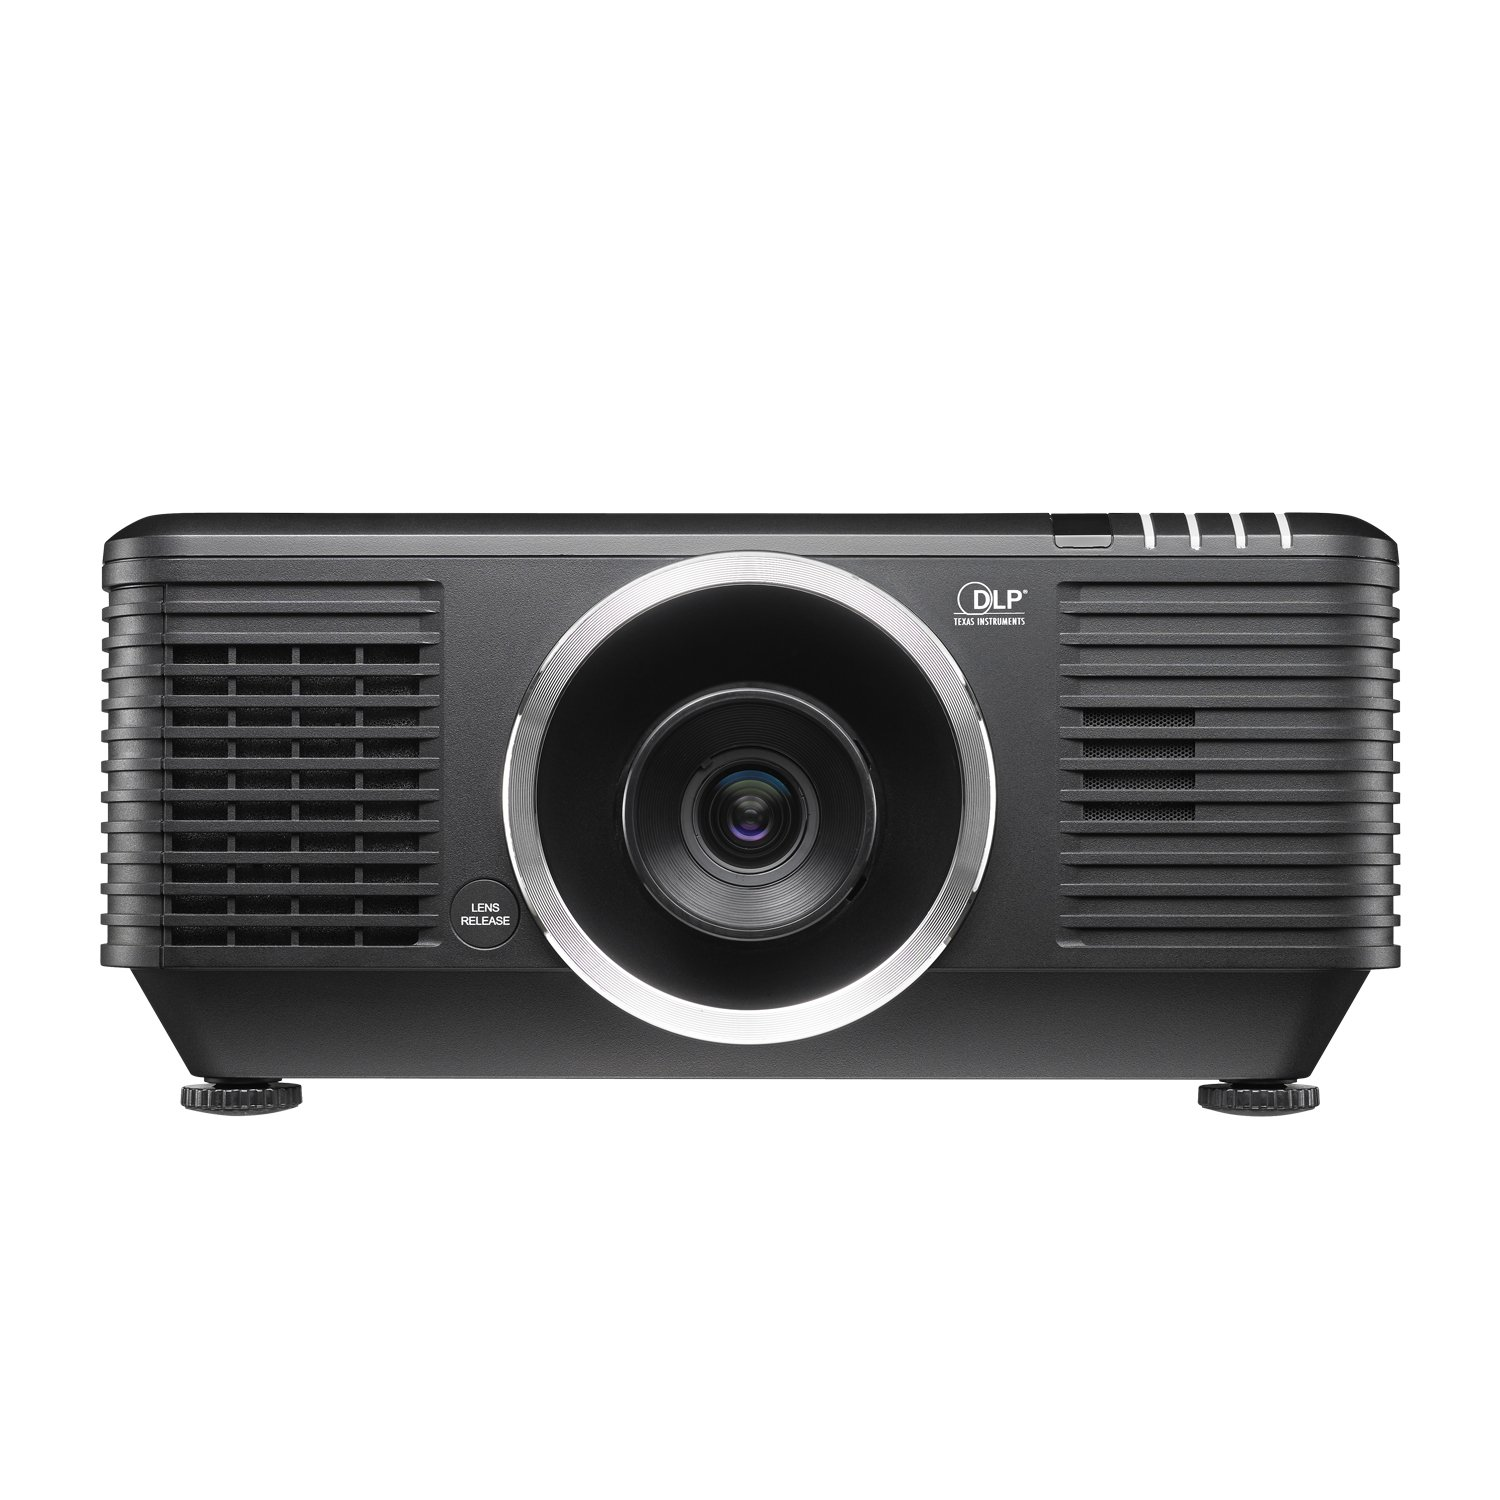 6000 Lumens Laser Projector - Body Only in Black